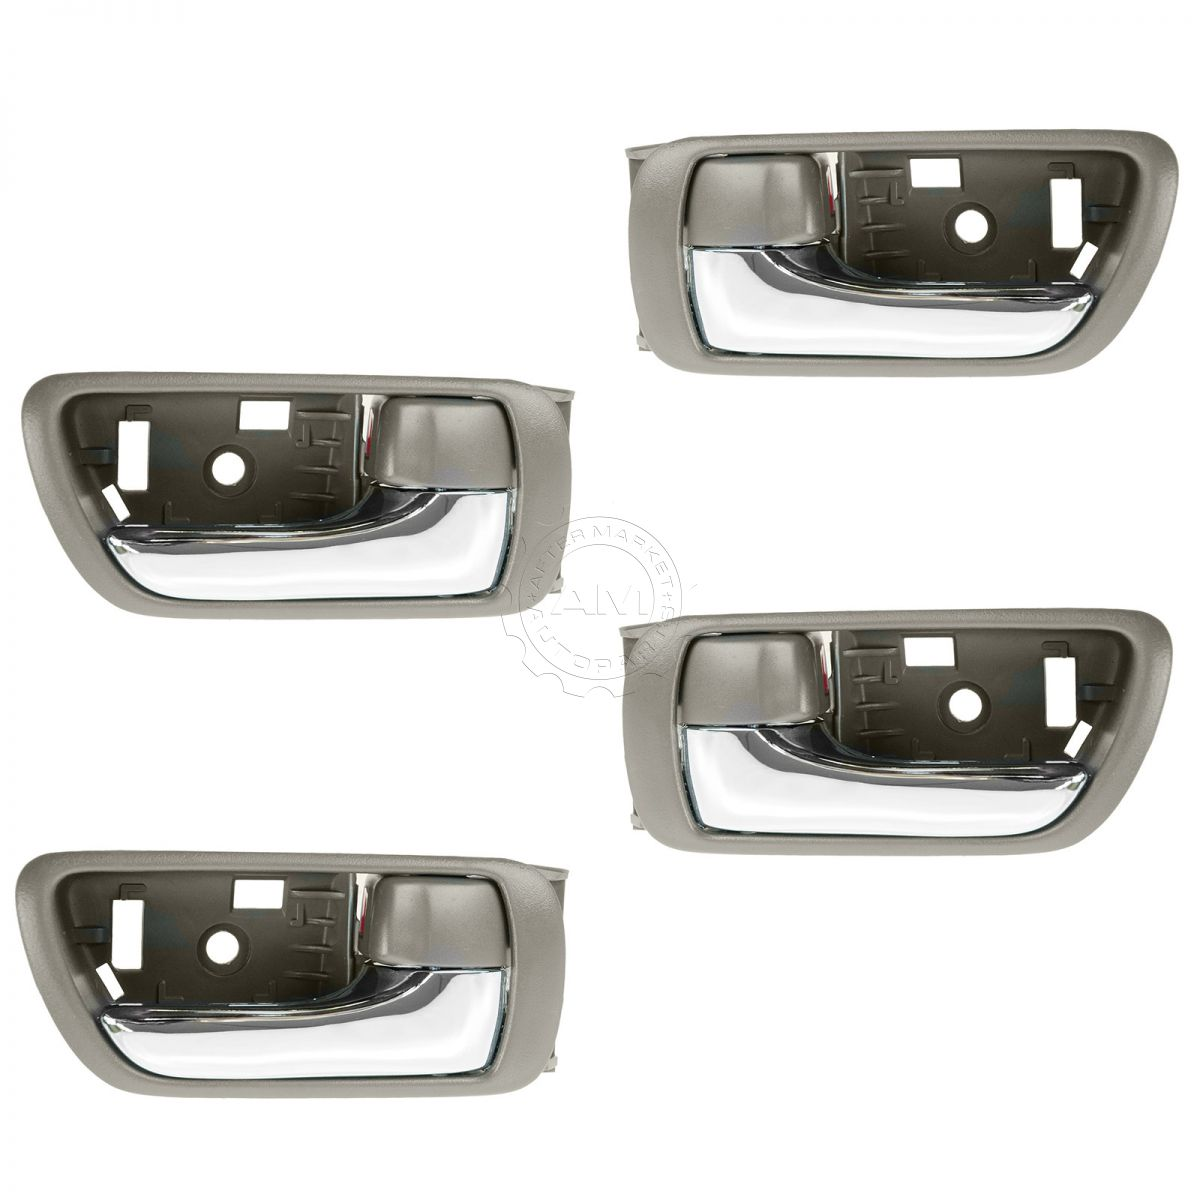 Door handles inside interior brown chrome kit set of 4 for - 2002 toyota camry interior door handle ...